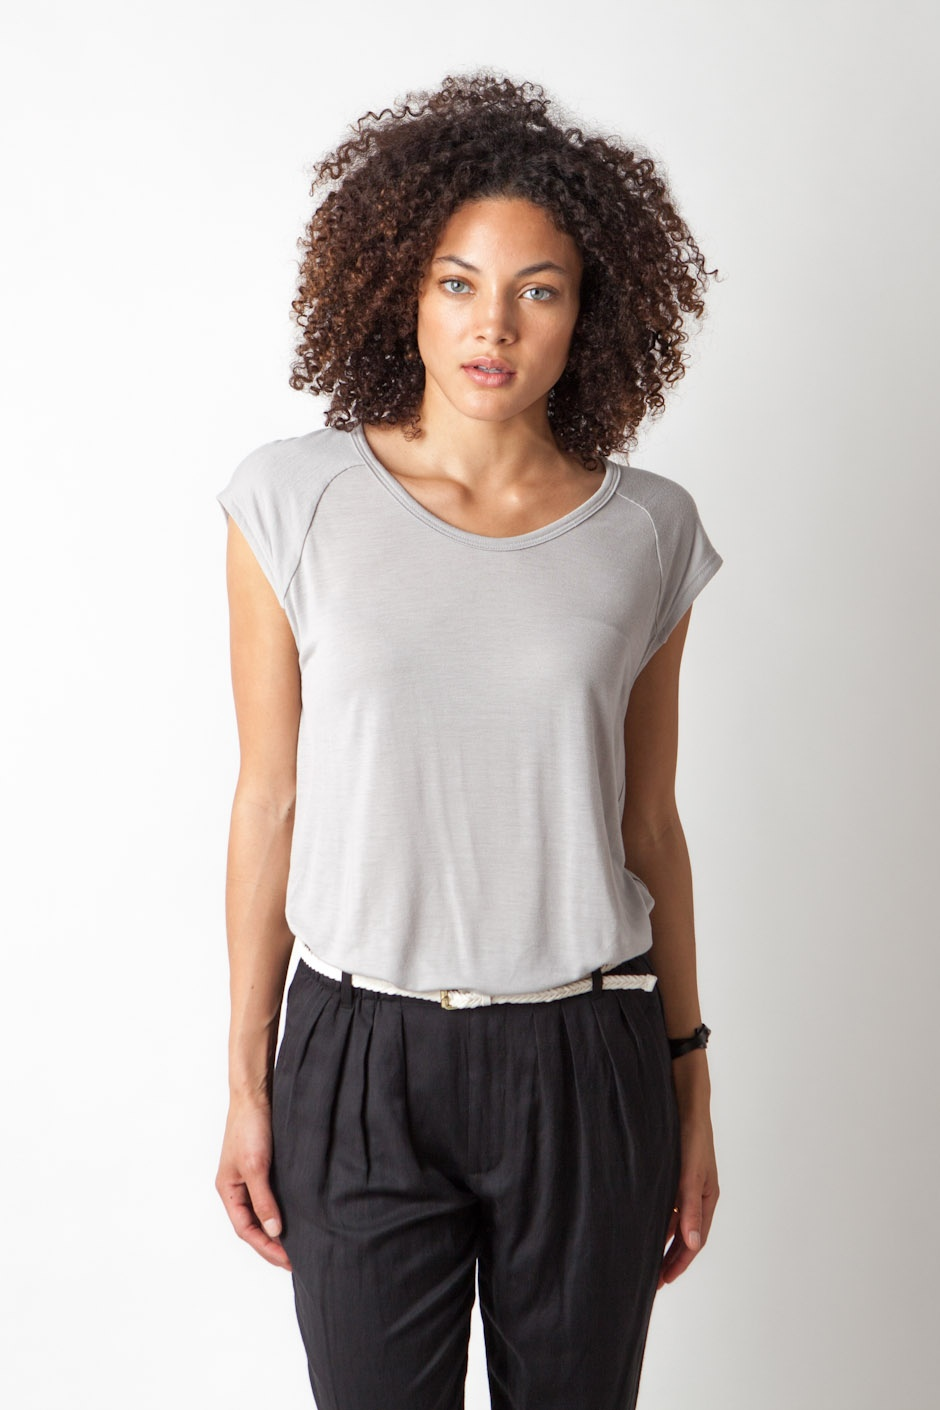 The Harlan - Women's clothing - Pickwick & Weller